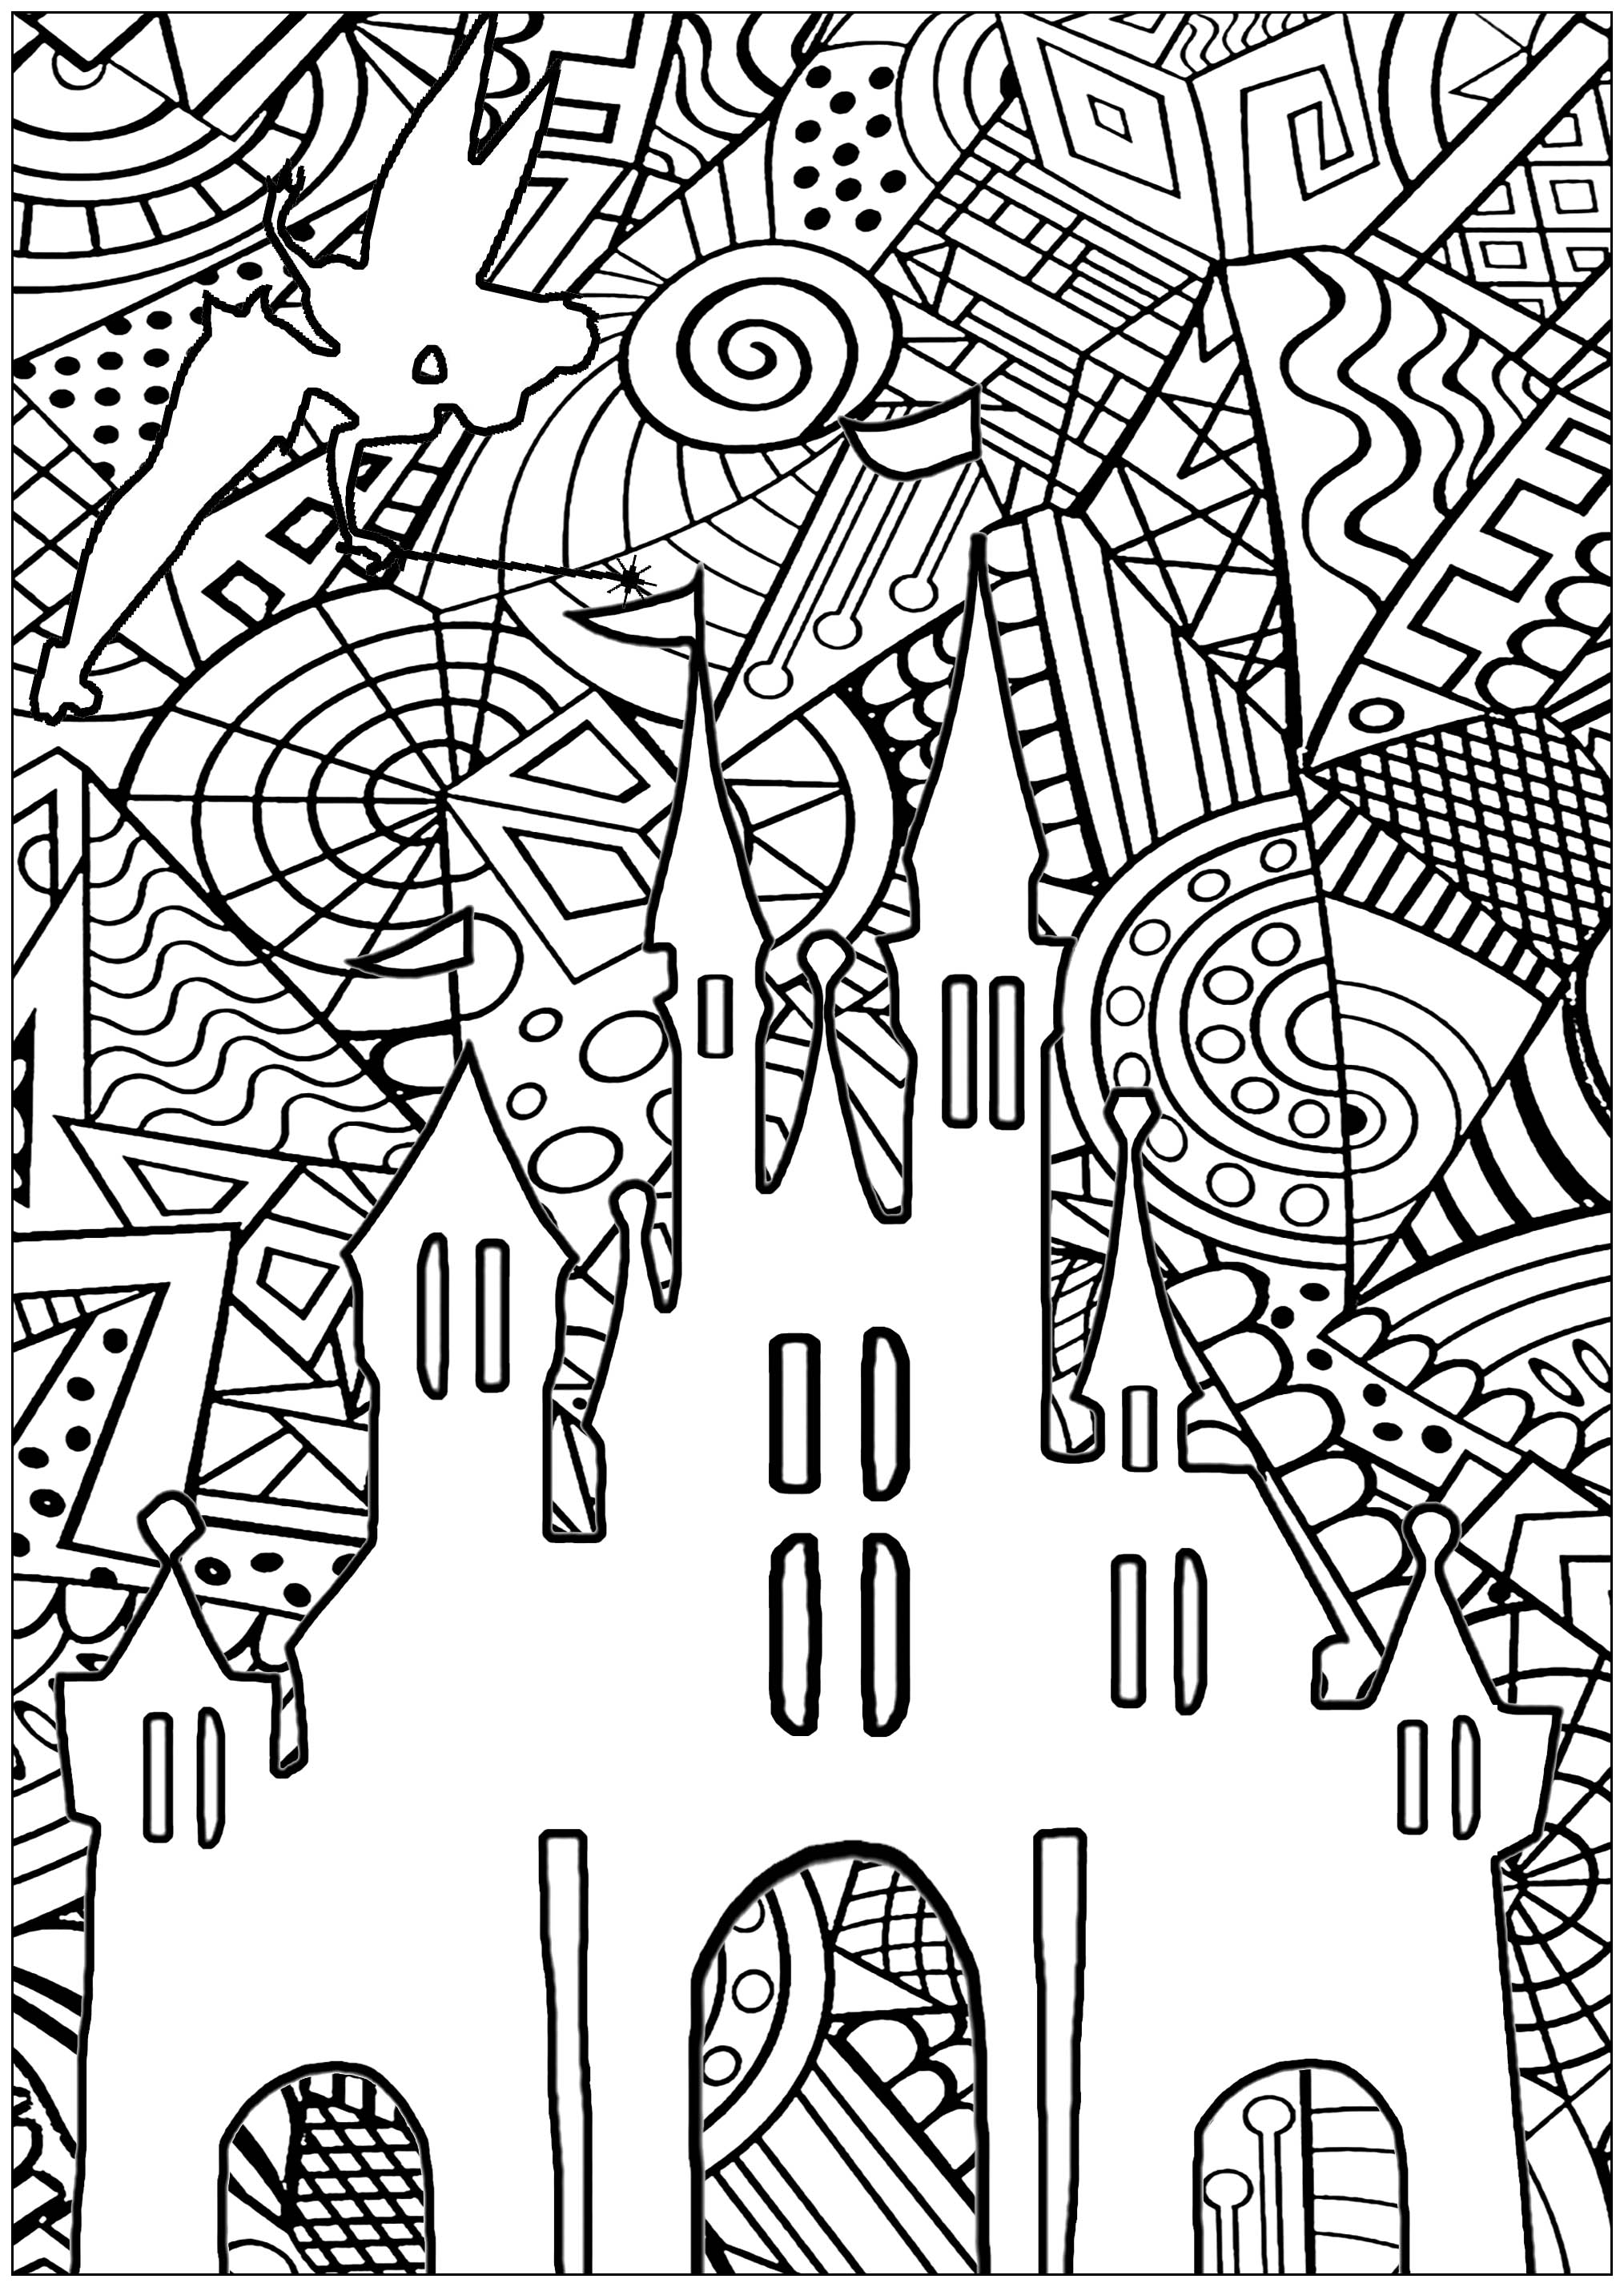 coloring page inspired by the famous cinderella castle the iconic symbol of the walt disney company and of disney theme parks do you see tinker bell